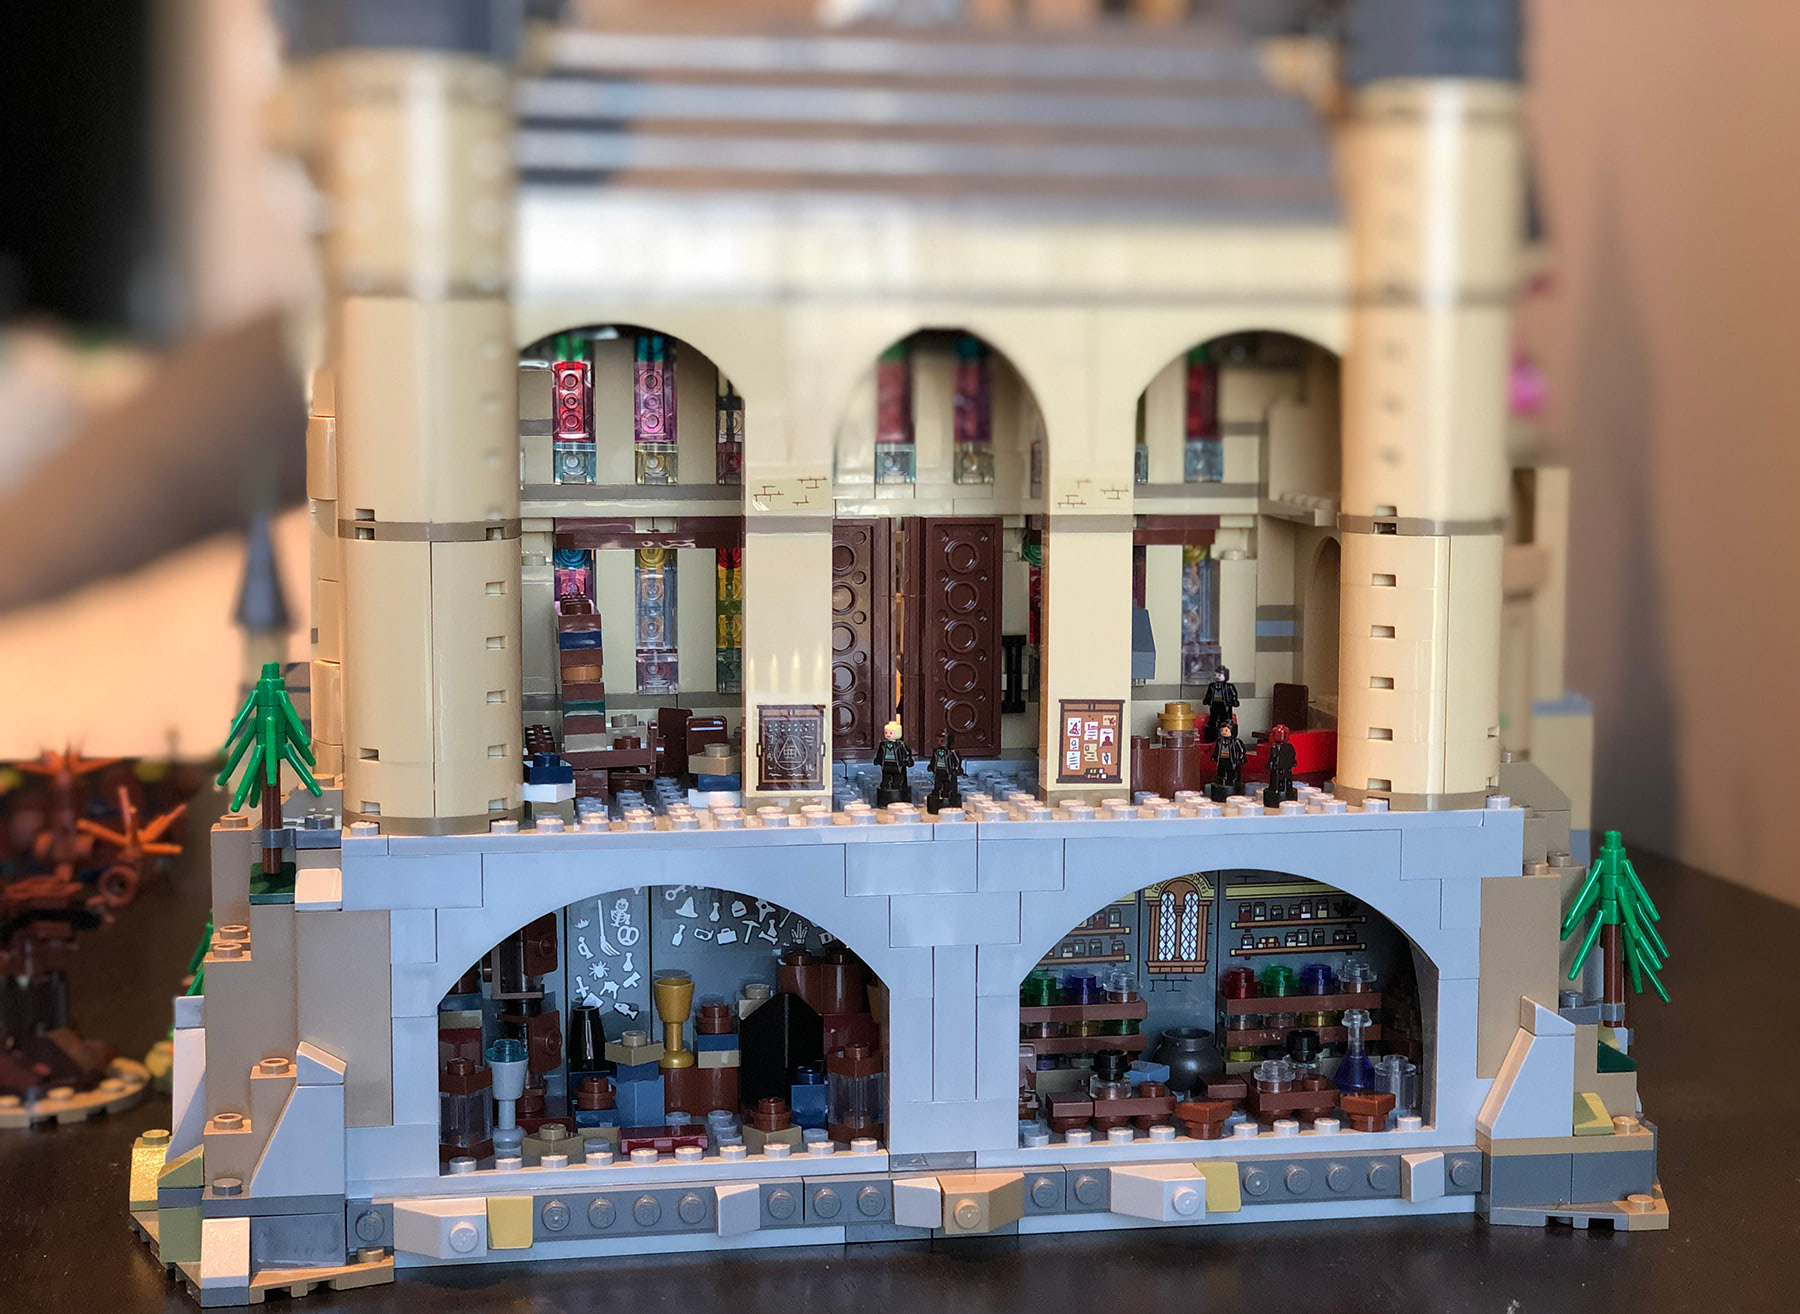 LEGO Hogwarts Castle (71043) common rooms and dungeons